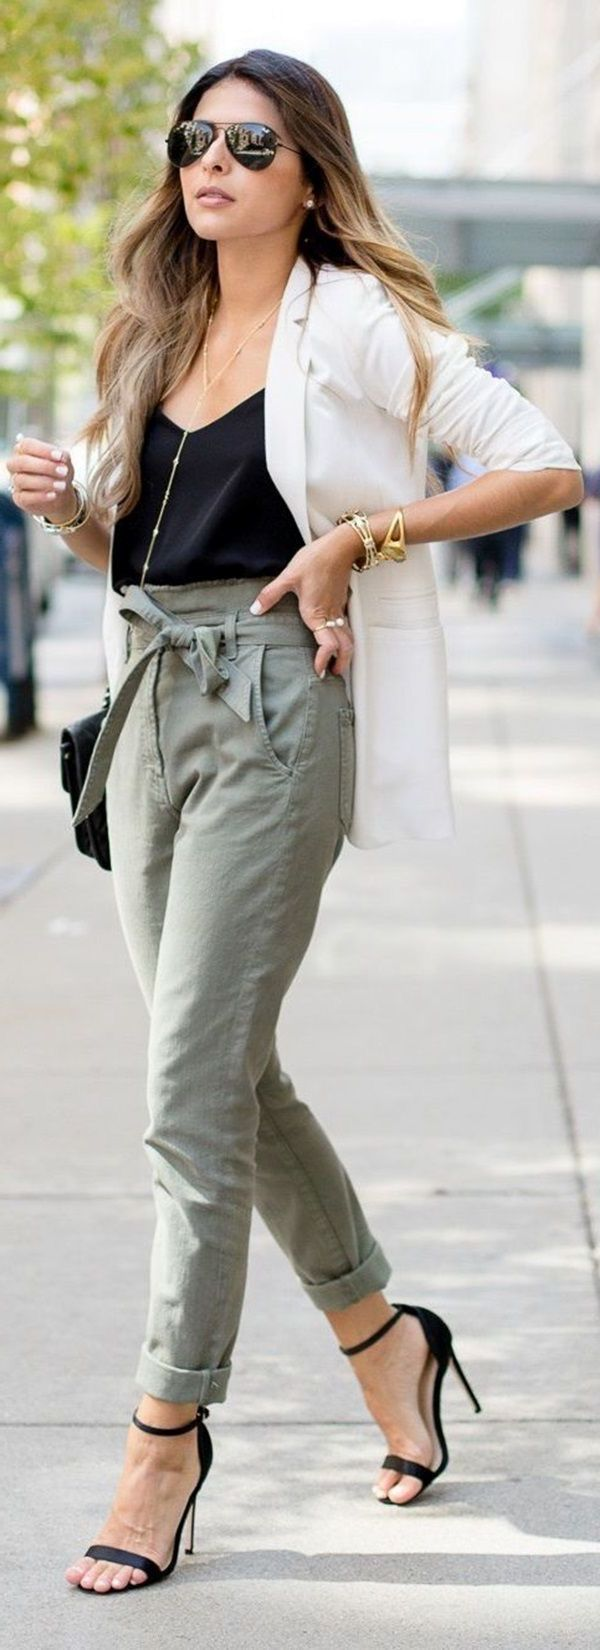 Best ways to wear khaki pants this summer 2021